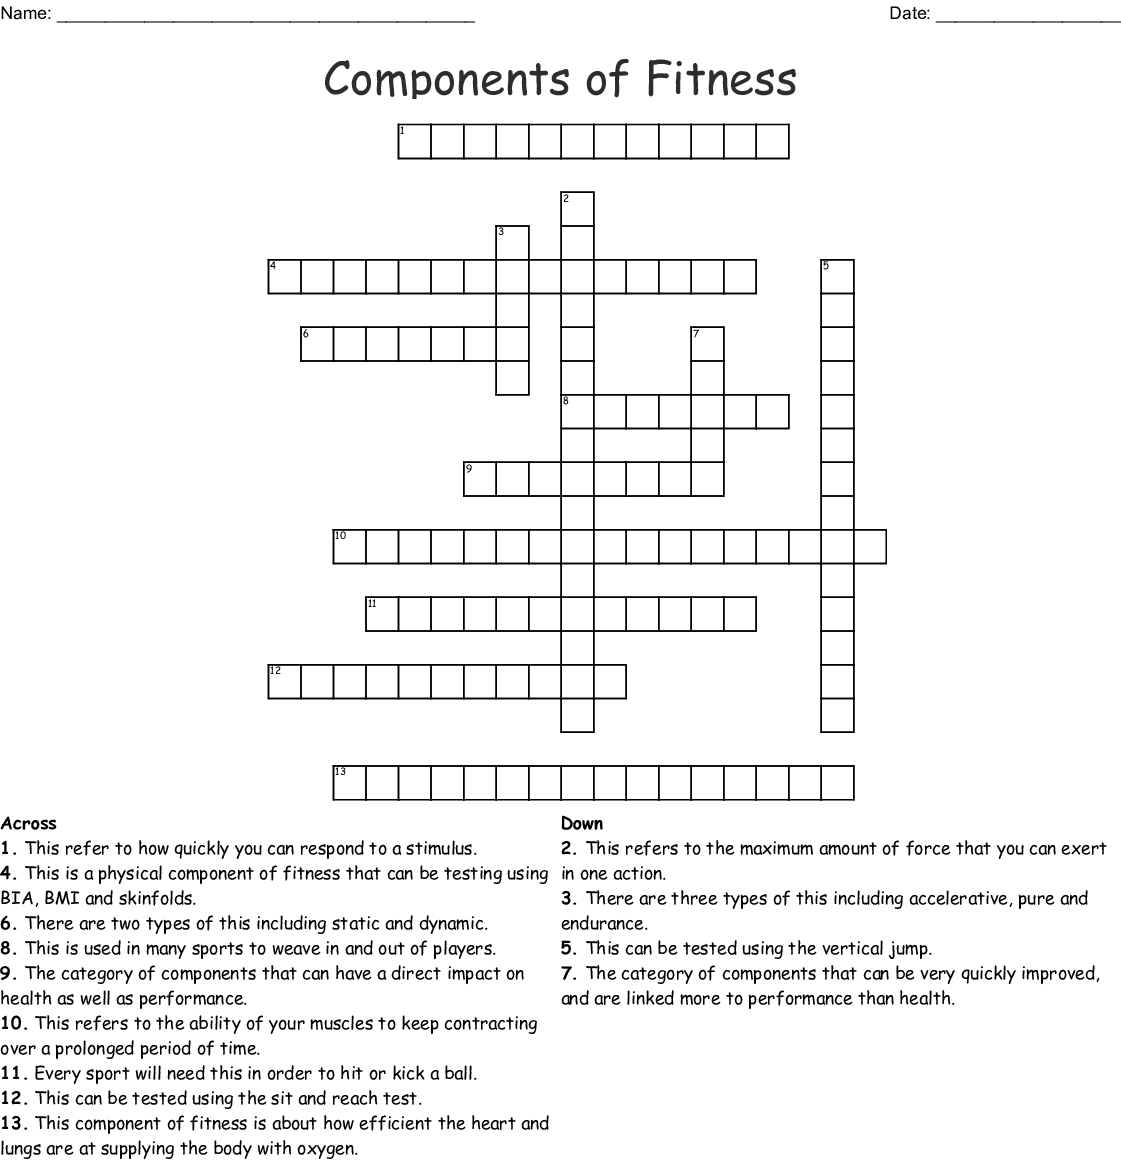 Components Of Fitness Crossword